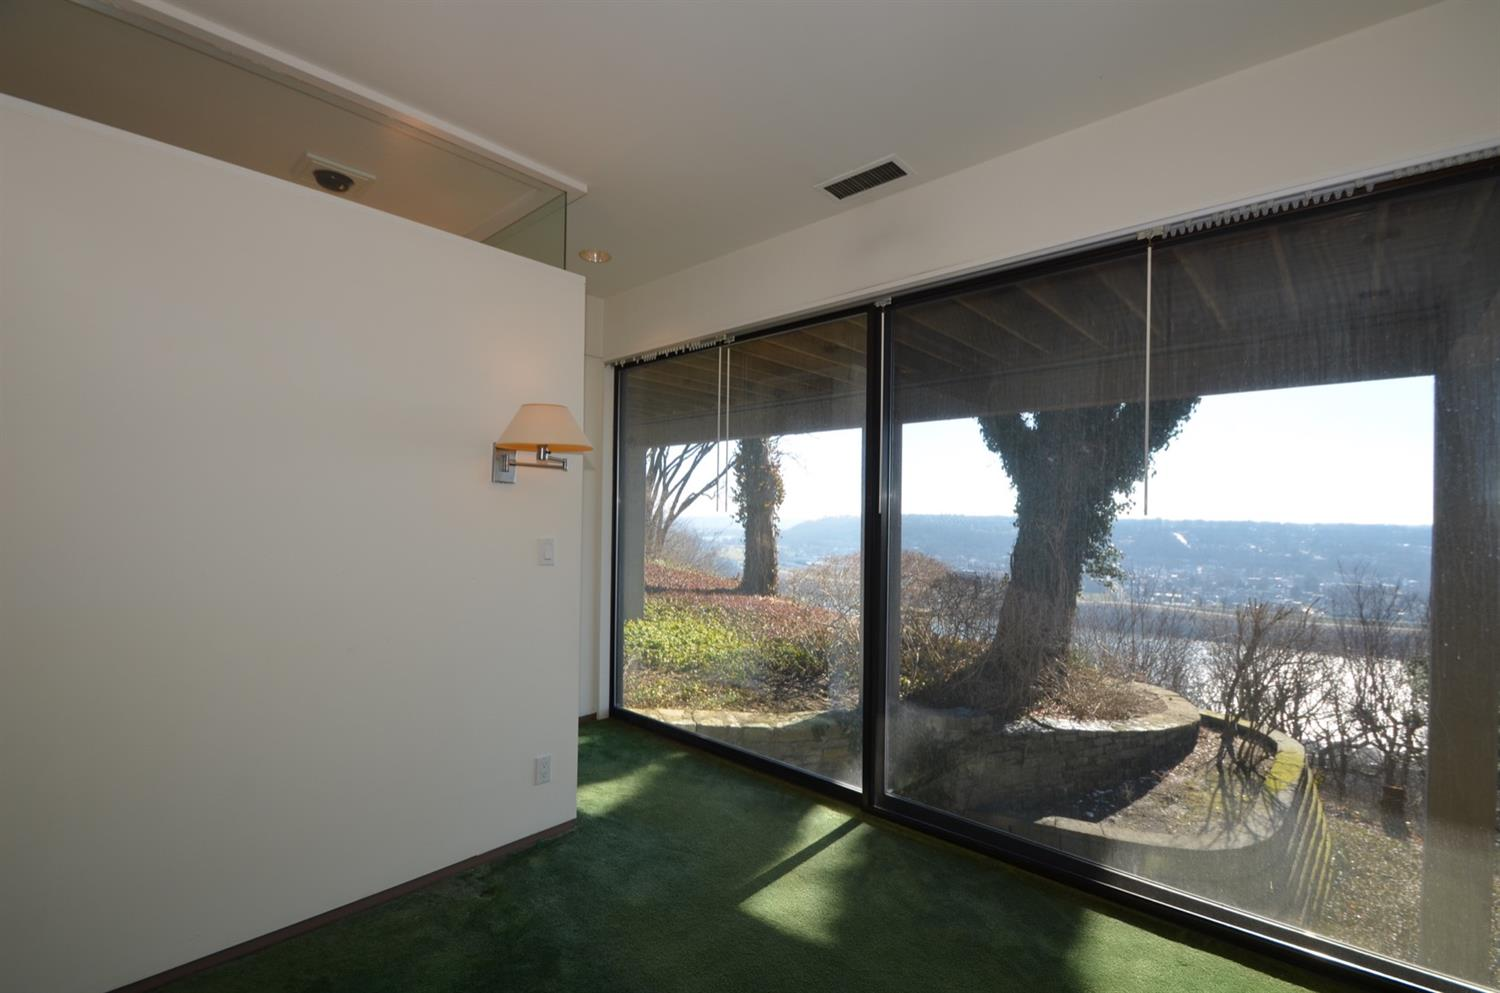 Bedroom 3 also features more custom closet cabinetry and oversized window/sliders overlooking the river view.